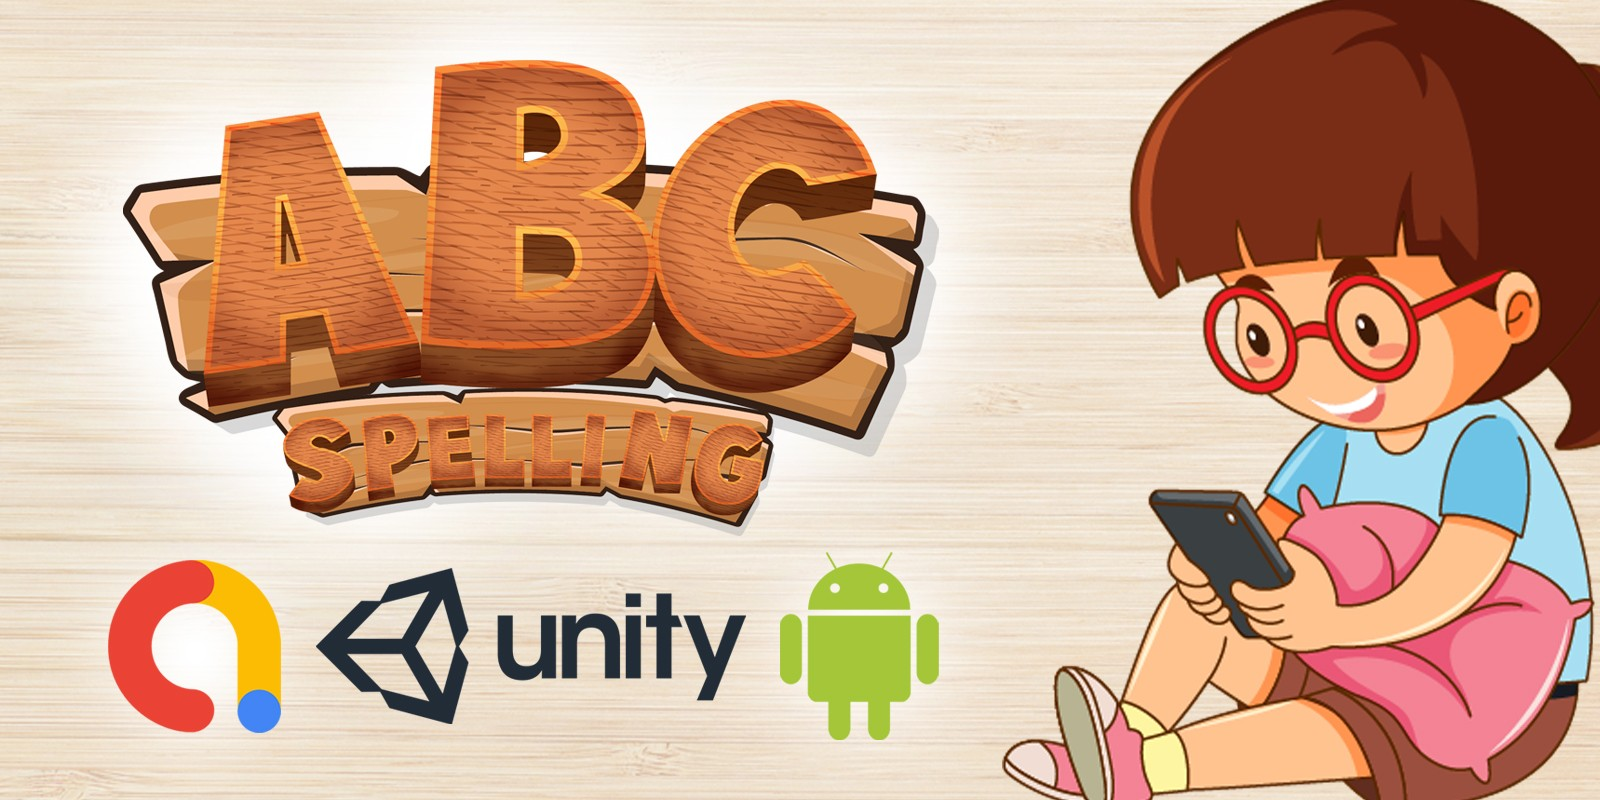 ABC Spelling Game For Kids - Unity Source Code